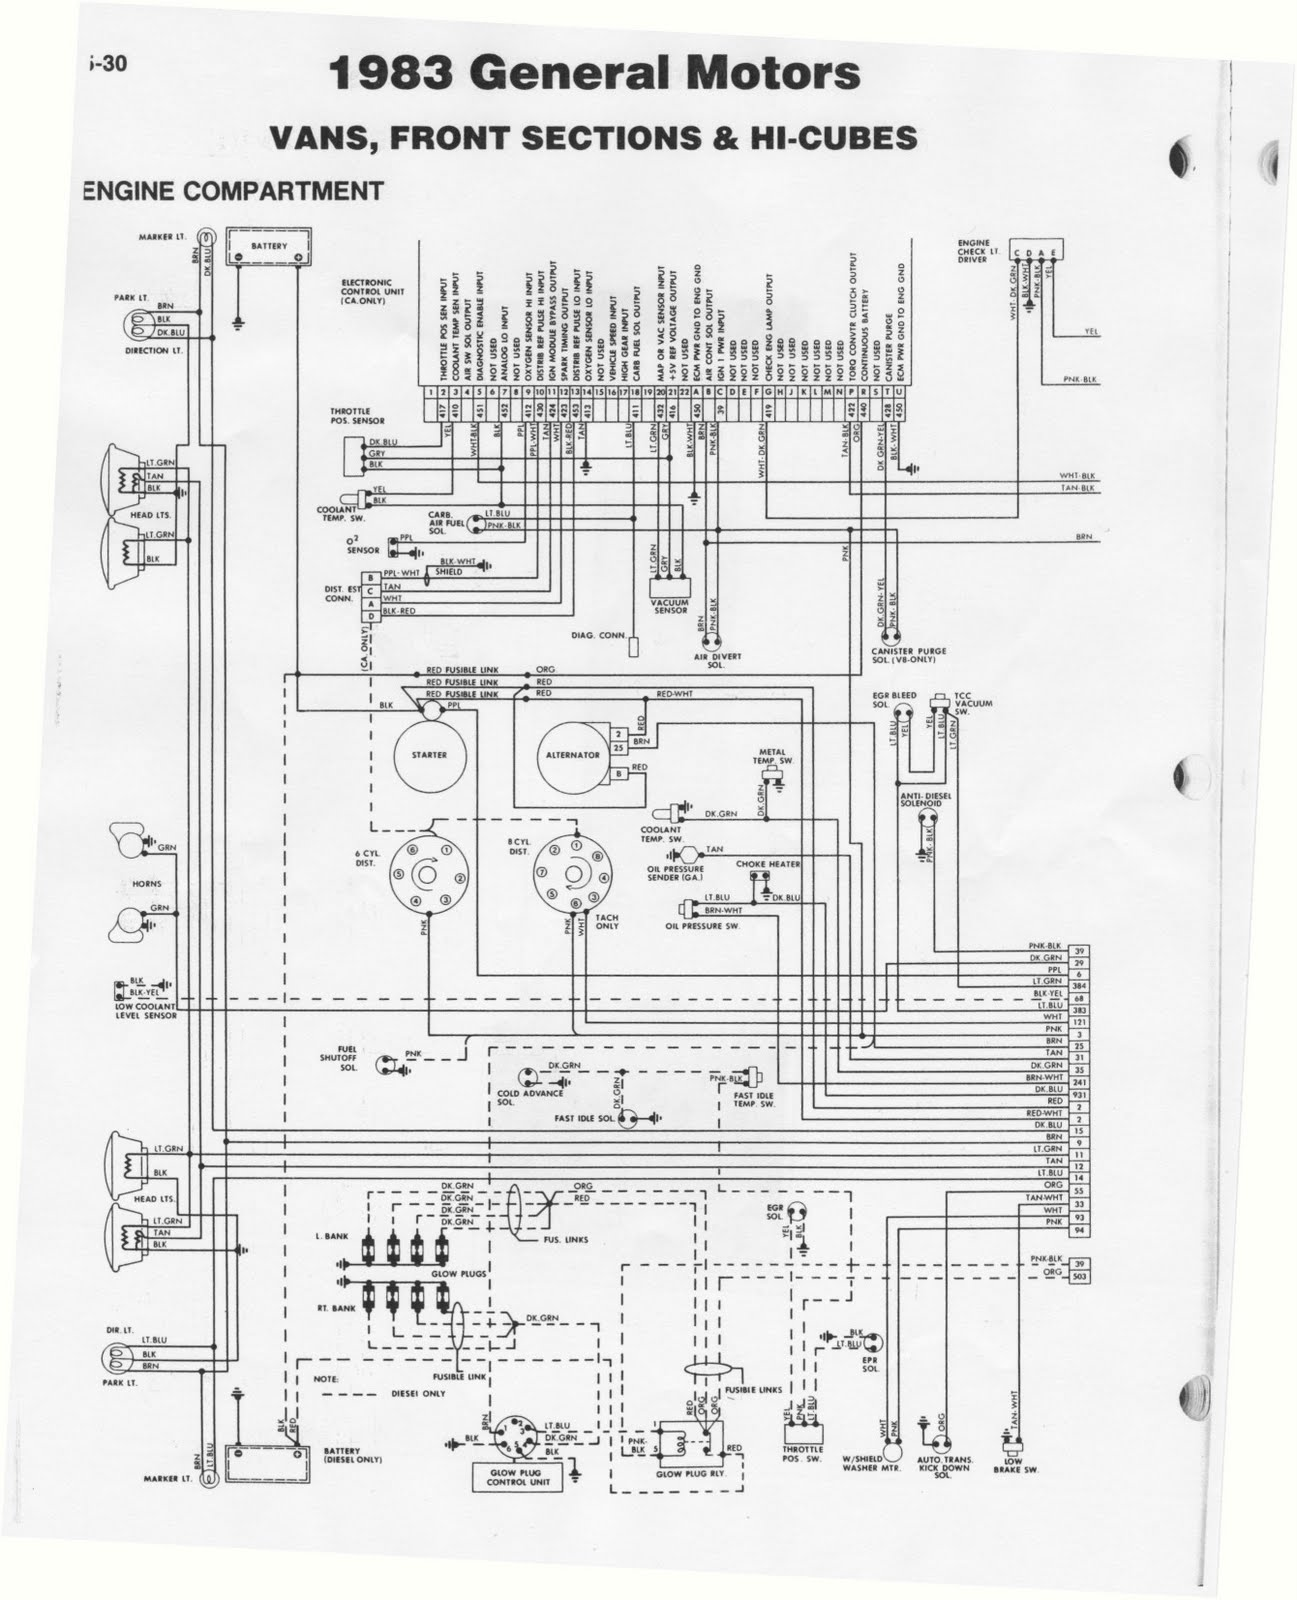 1987 Ford F350 Wiring Diagram from 3.bp.blogspot.com